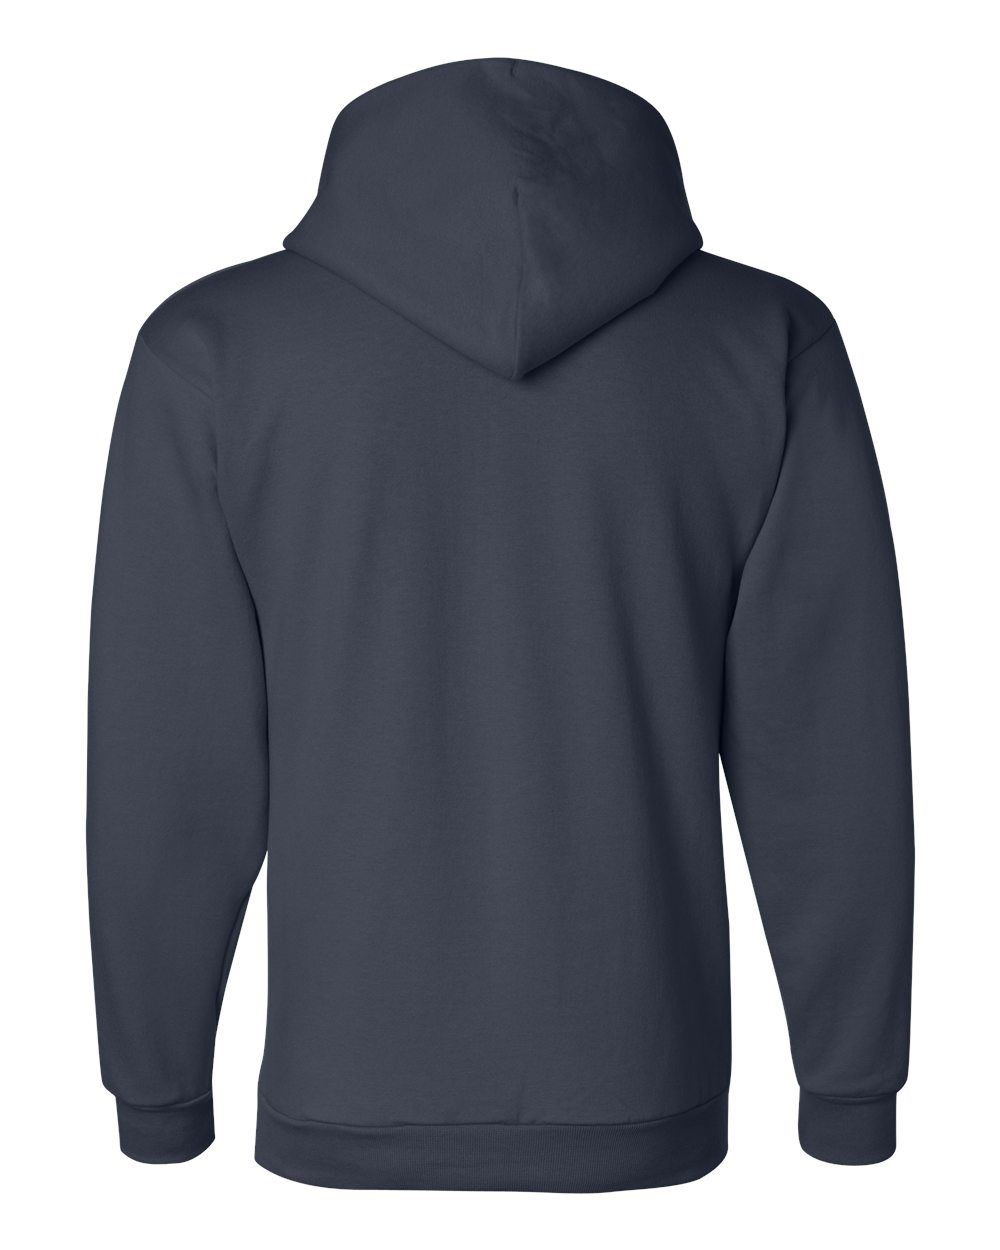 Champion-Mens-Double-Dry-Eco-Hooded-Sweatshirt-Hoodie-Pullover-S700-up-to-3XL miniature 28